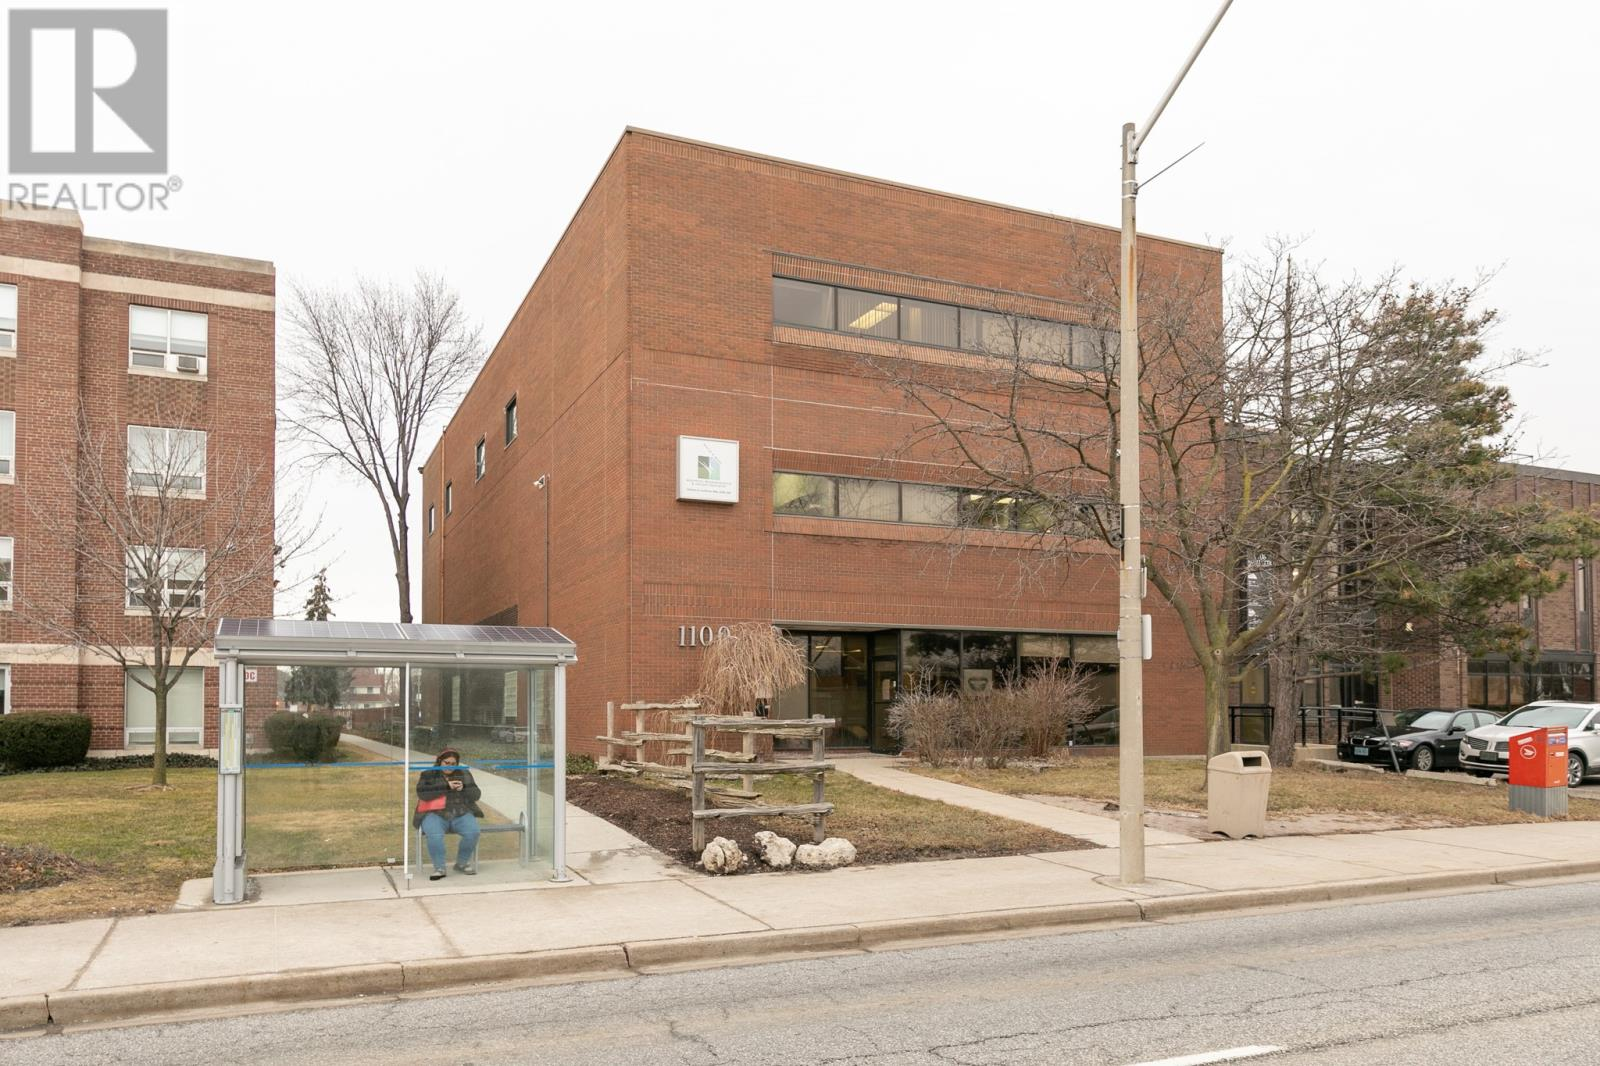 Image nr 1 for listing 1100 OUELLETTE AVENUE, Windsor